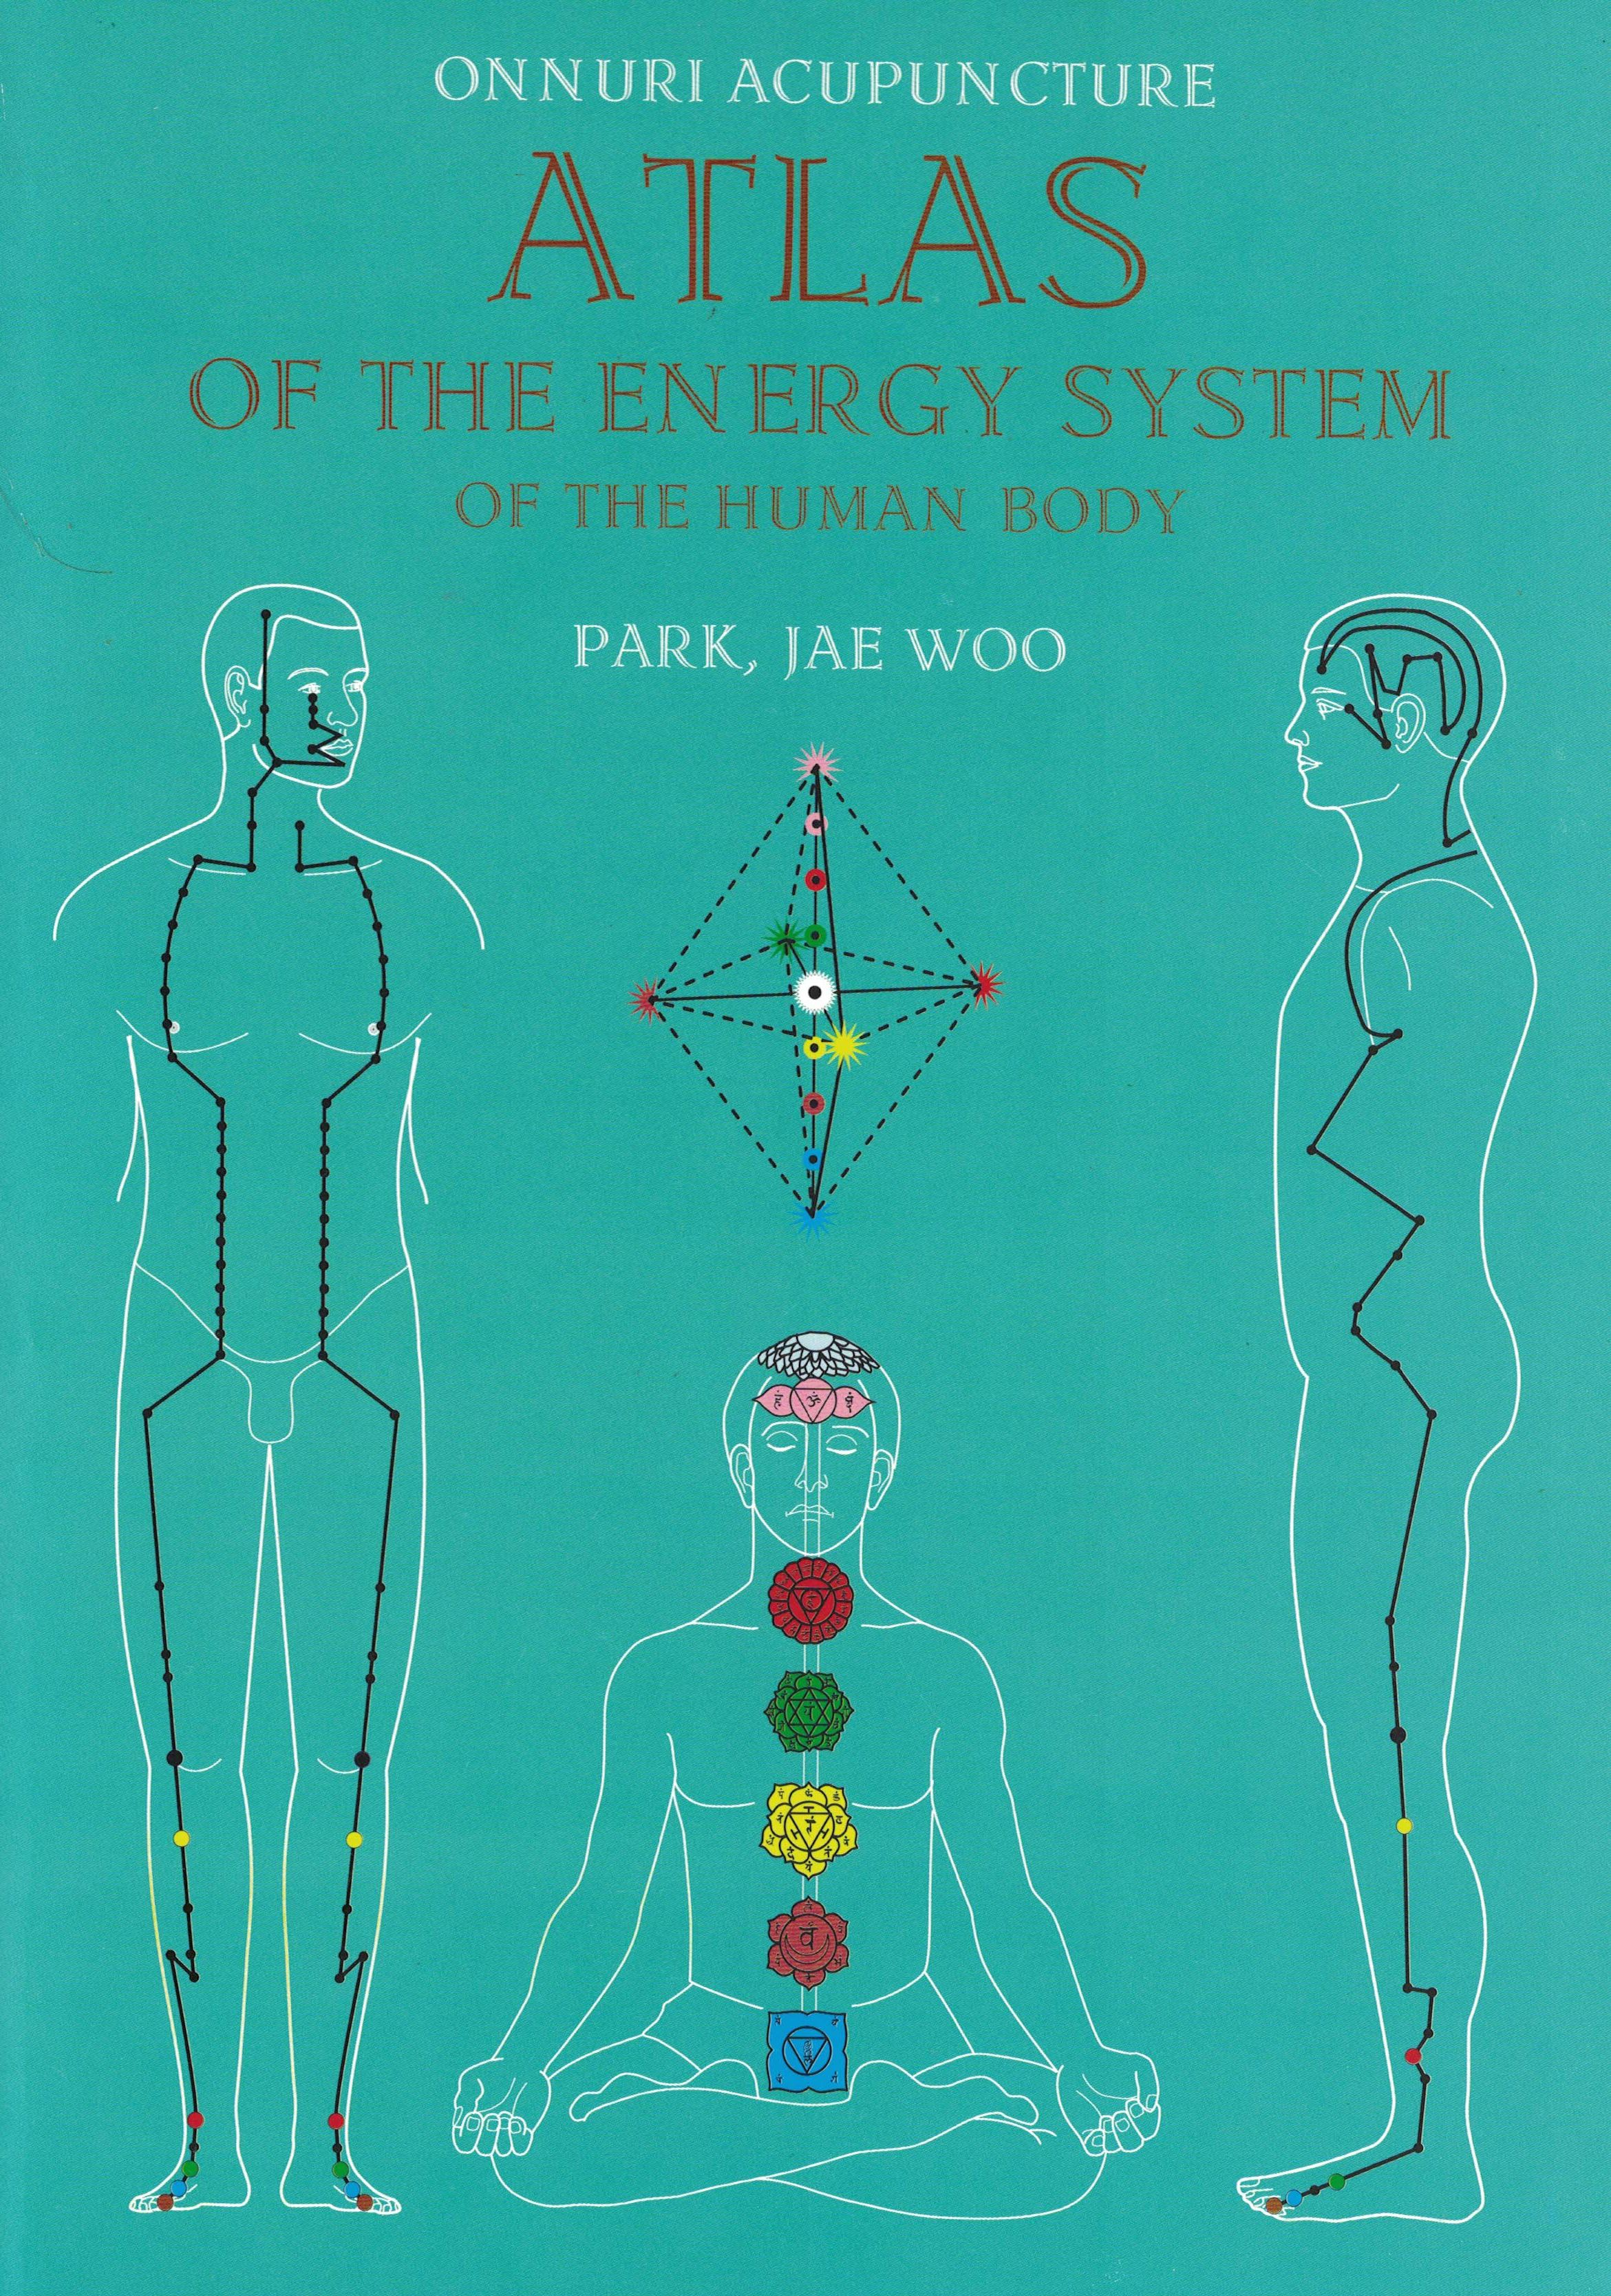 atlas of the energy system of the human body books su jok needles and acupuncture corporal Sujok Points Su Jok Therapy Seed